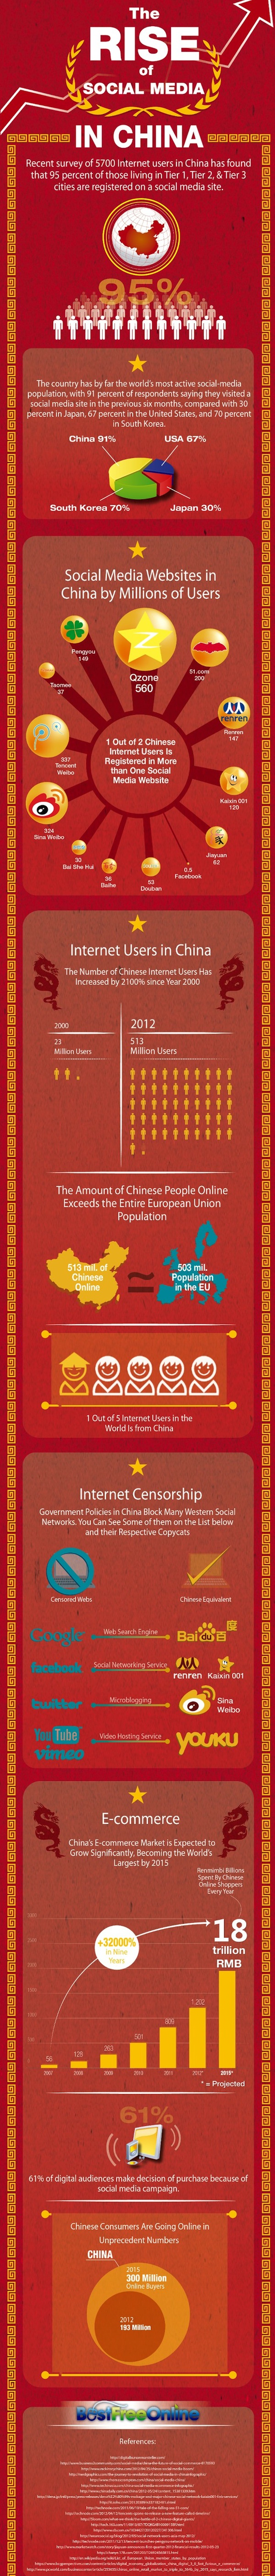 Infographic: The rise of social media in China